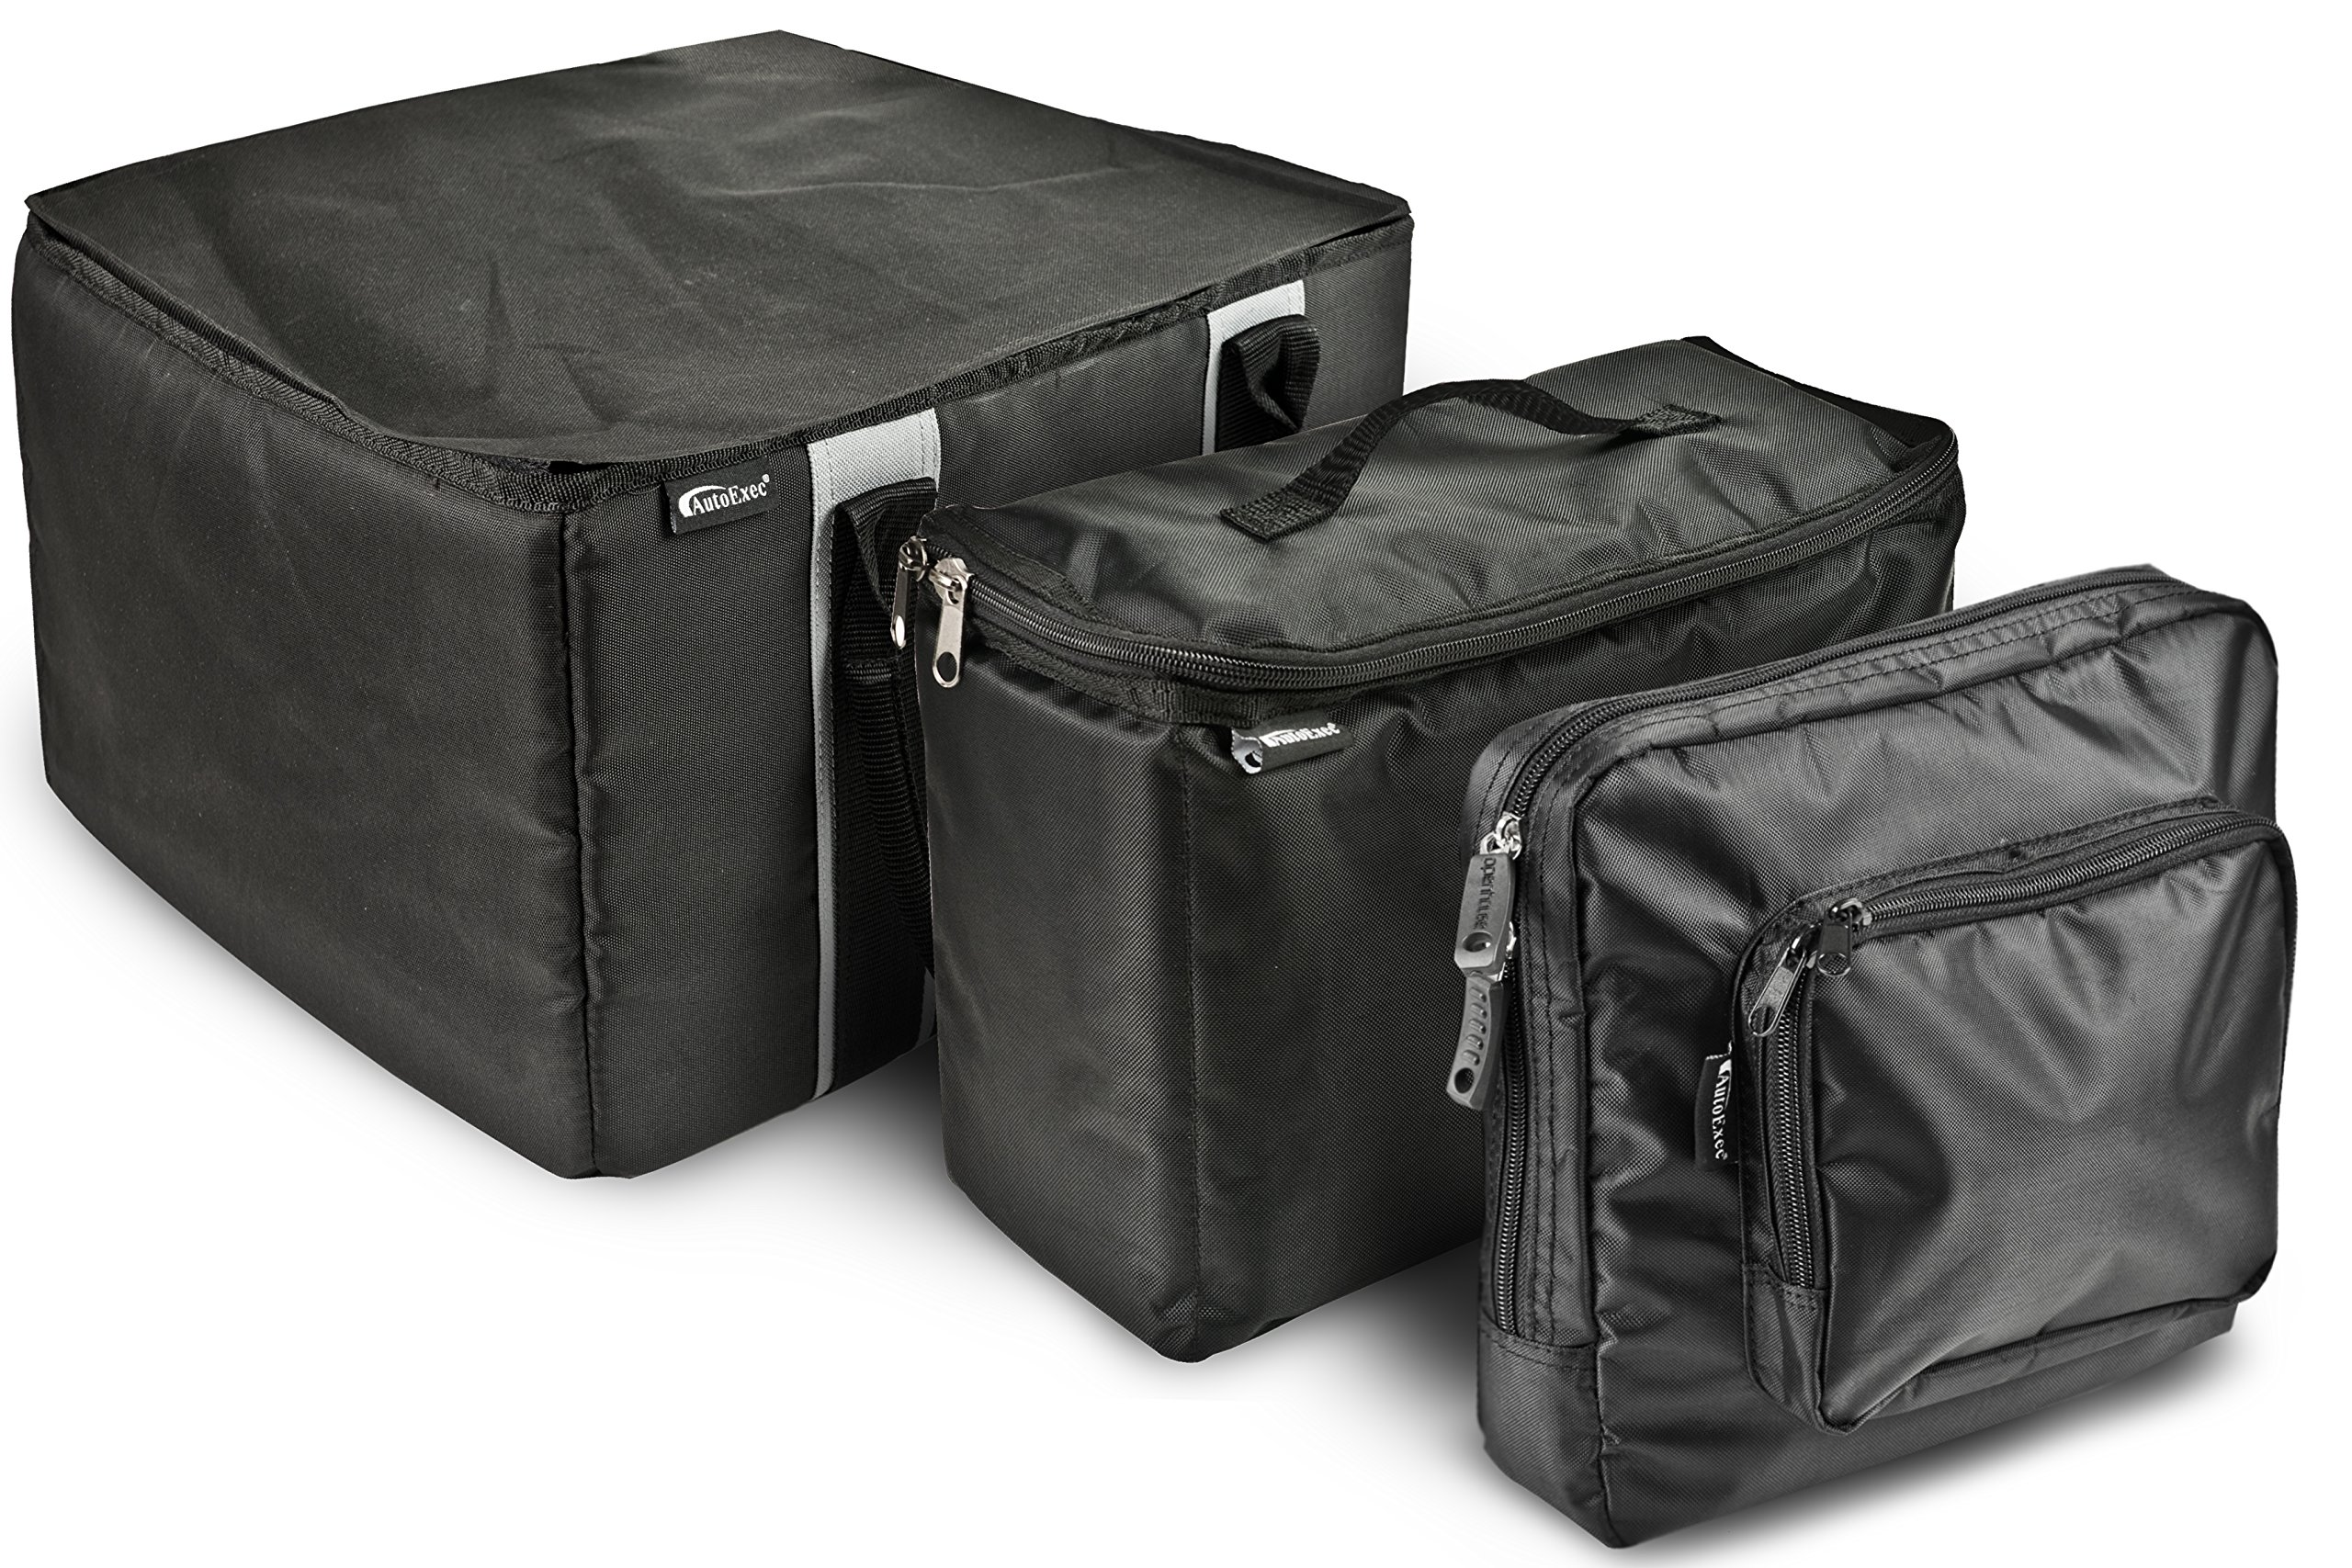 AutoExec AETote-09 Black/Grey File Tote with One Cooler and One Tablet Case by AutoExec